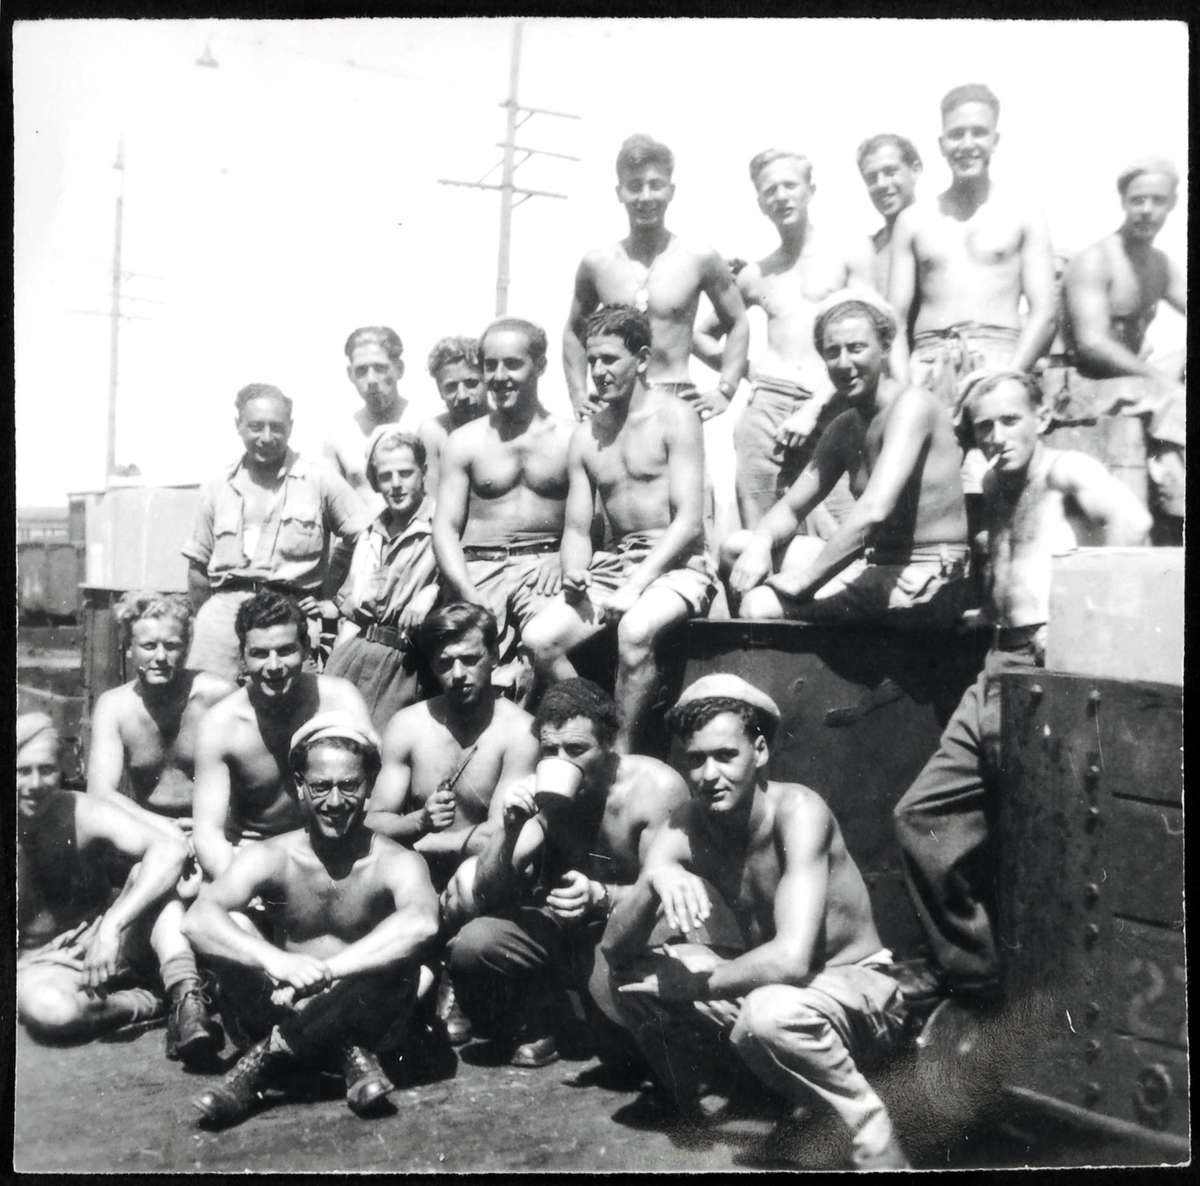 Members of the 8 AEC in Albury, 1942. Courtesy of the Jewish Museum of Australia, private donor, 4149.